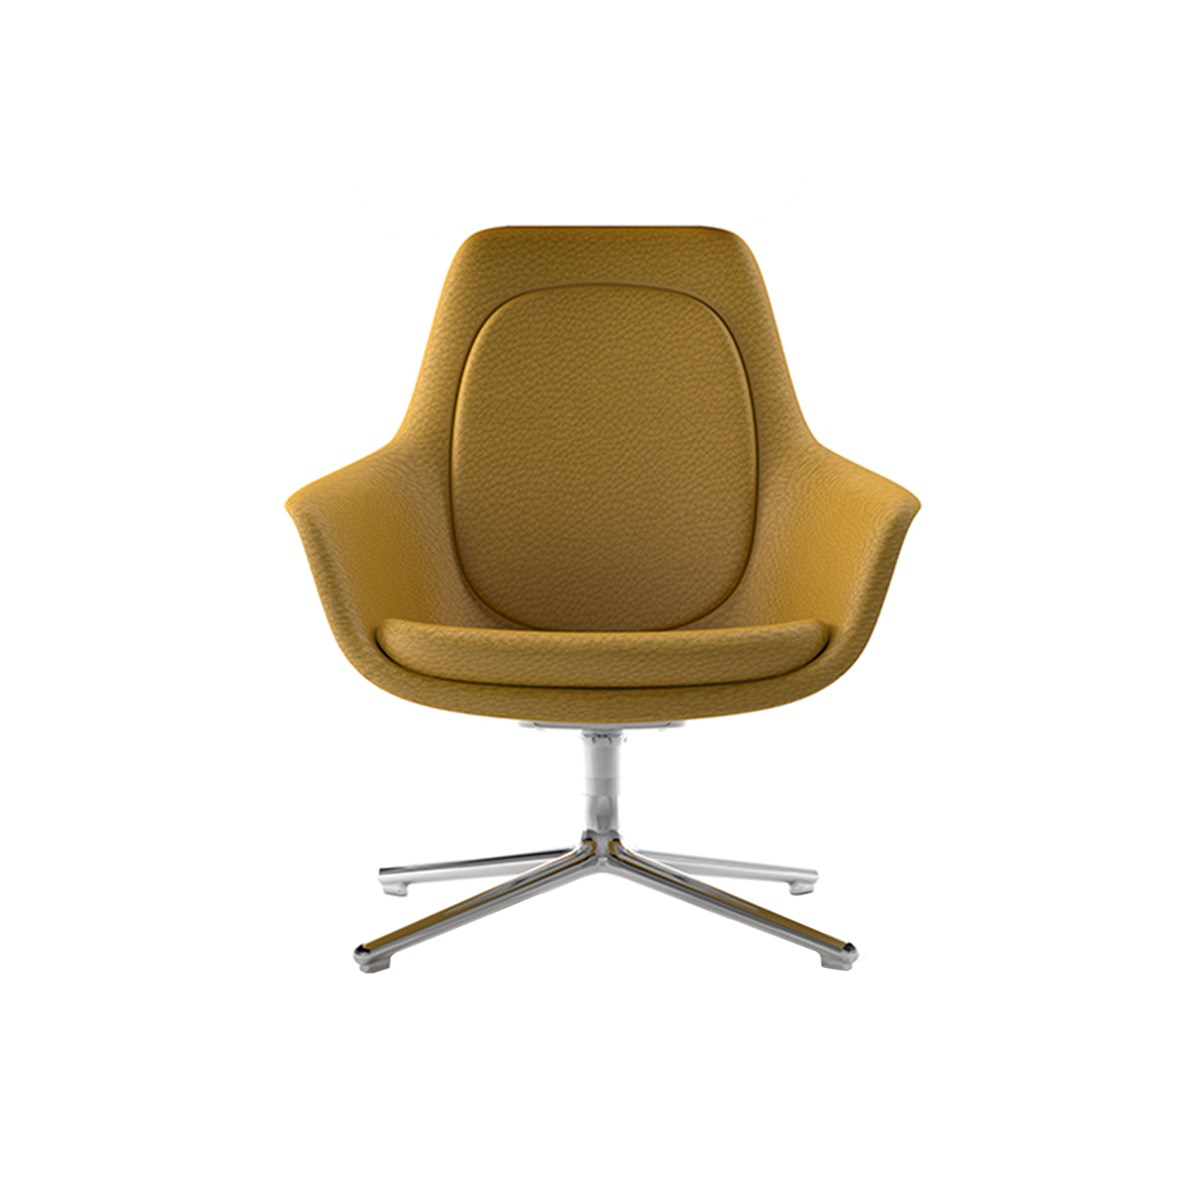 Neospace-Anthem-Lounge-Chair-Contract-Matisse-1